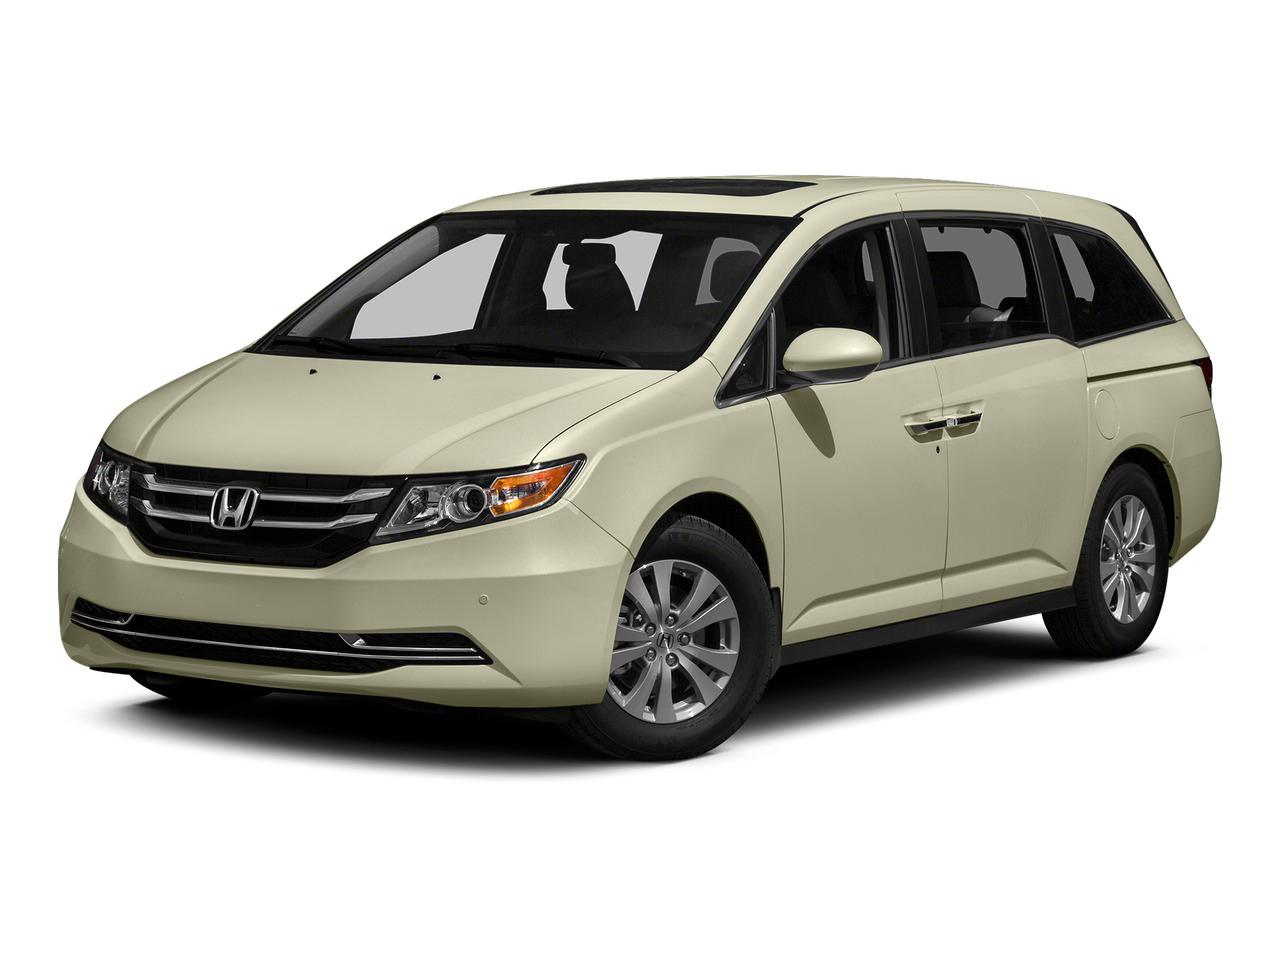 2015 Honda Odyssey Vehicle Photo in Cary, NC 27511